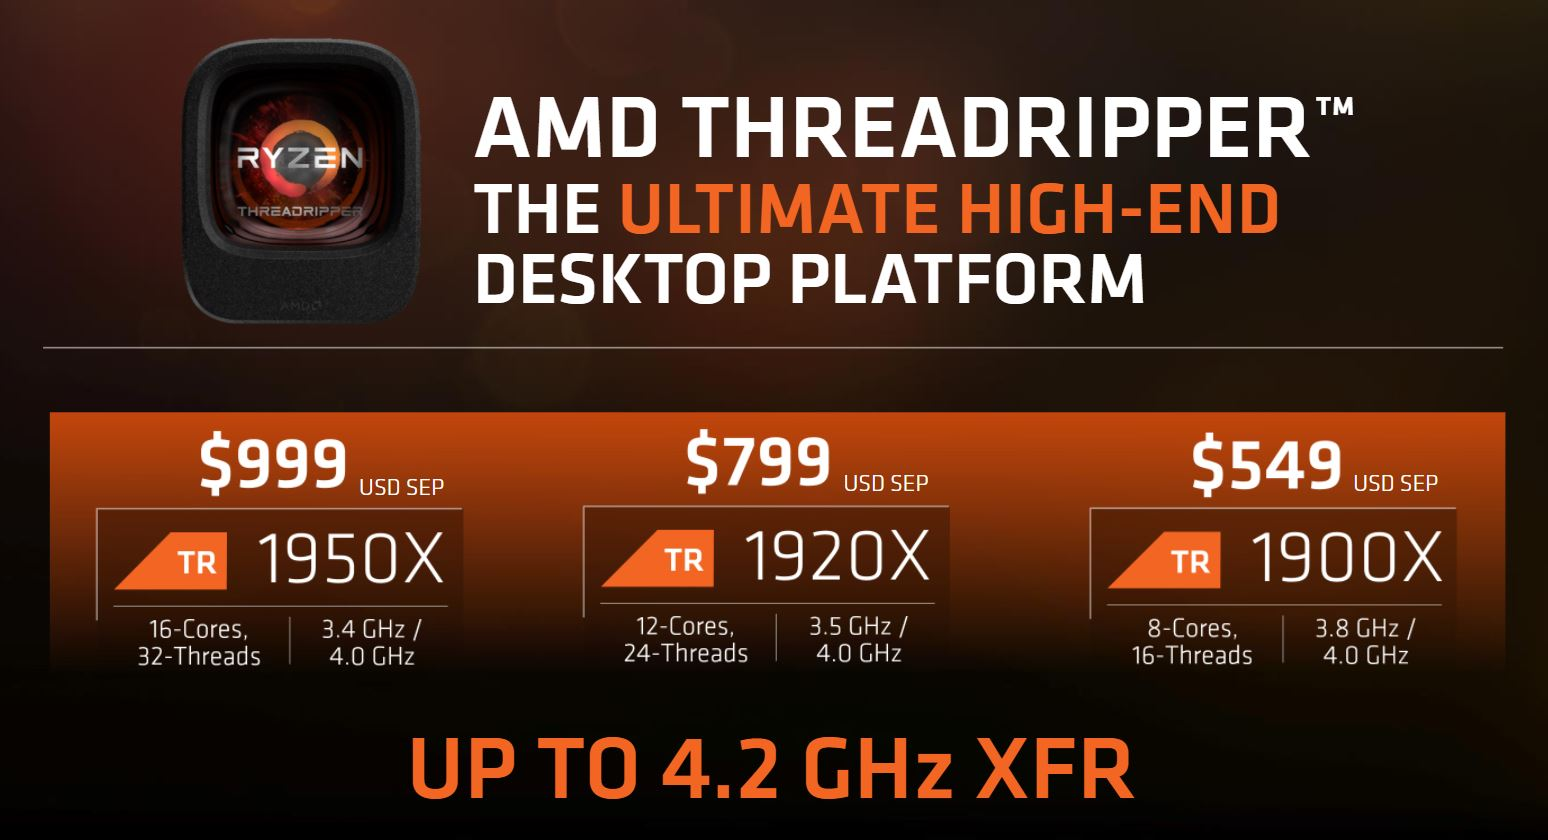 AMD Threadripper 1950X 1920X 1900X Family And Pricing